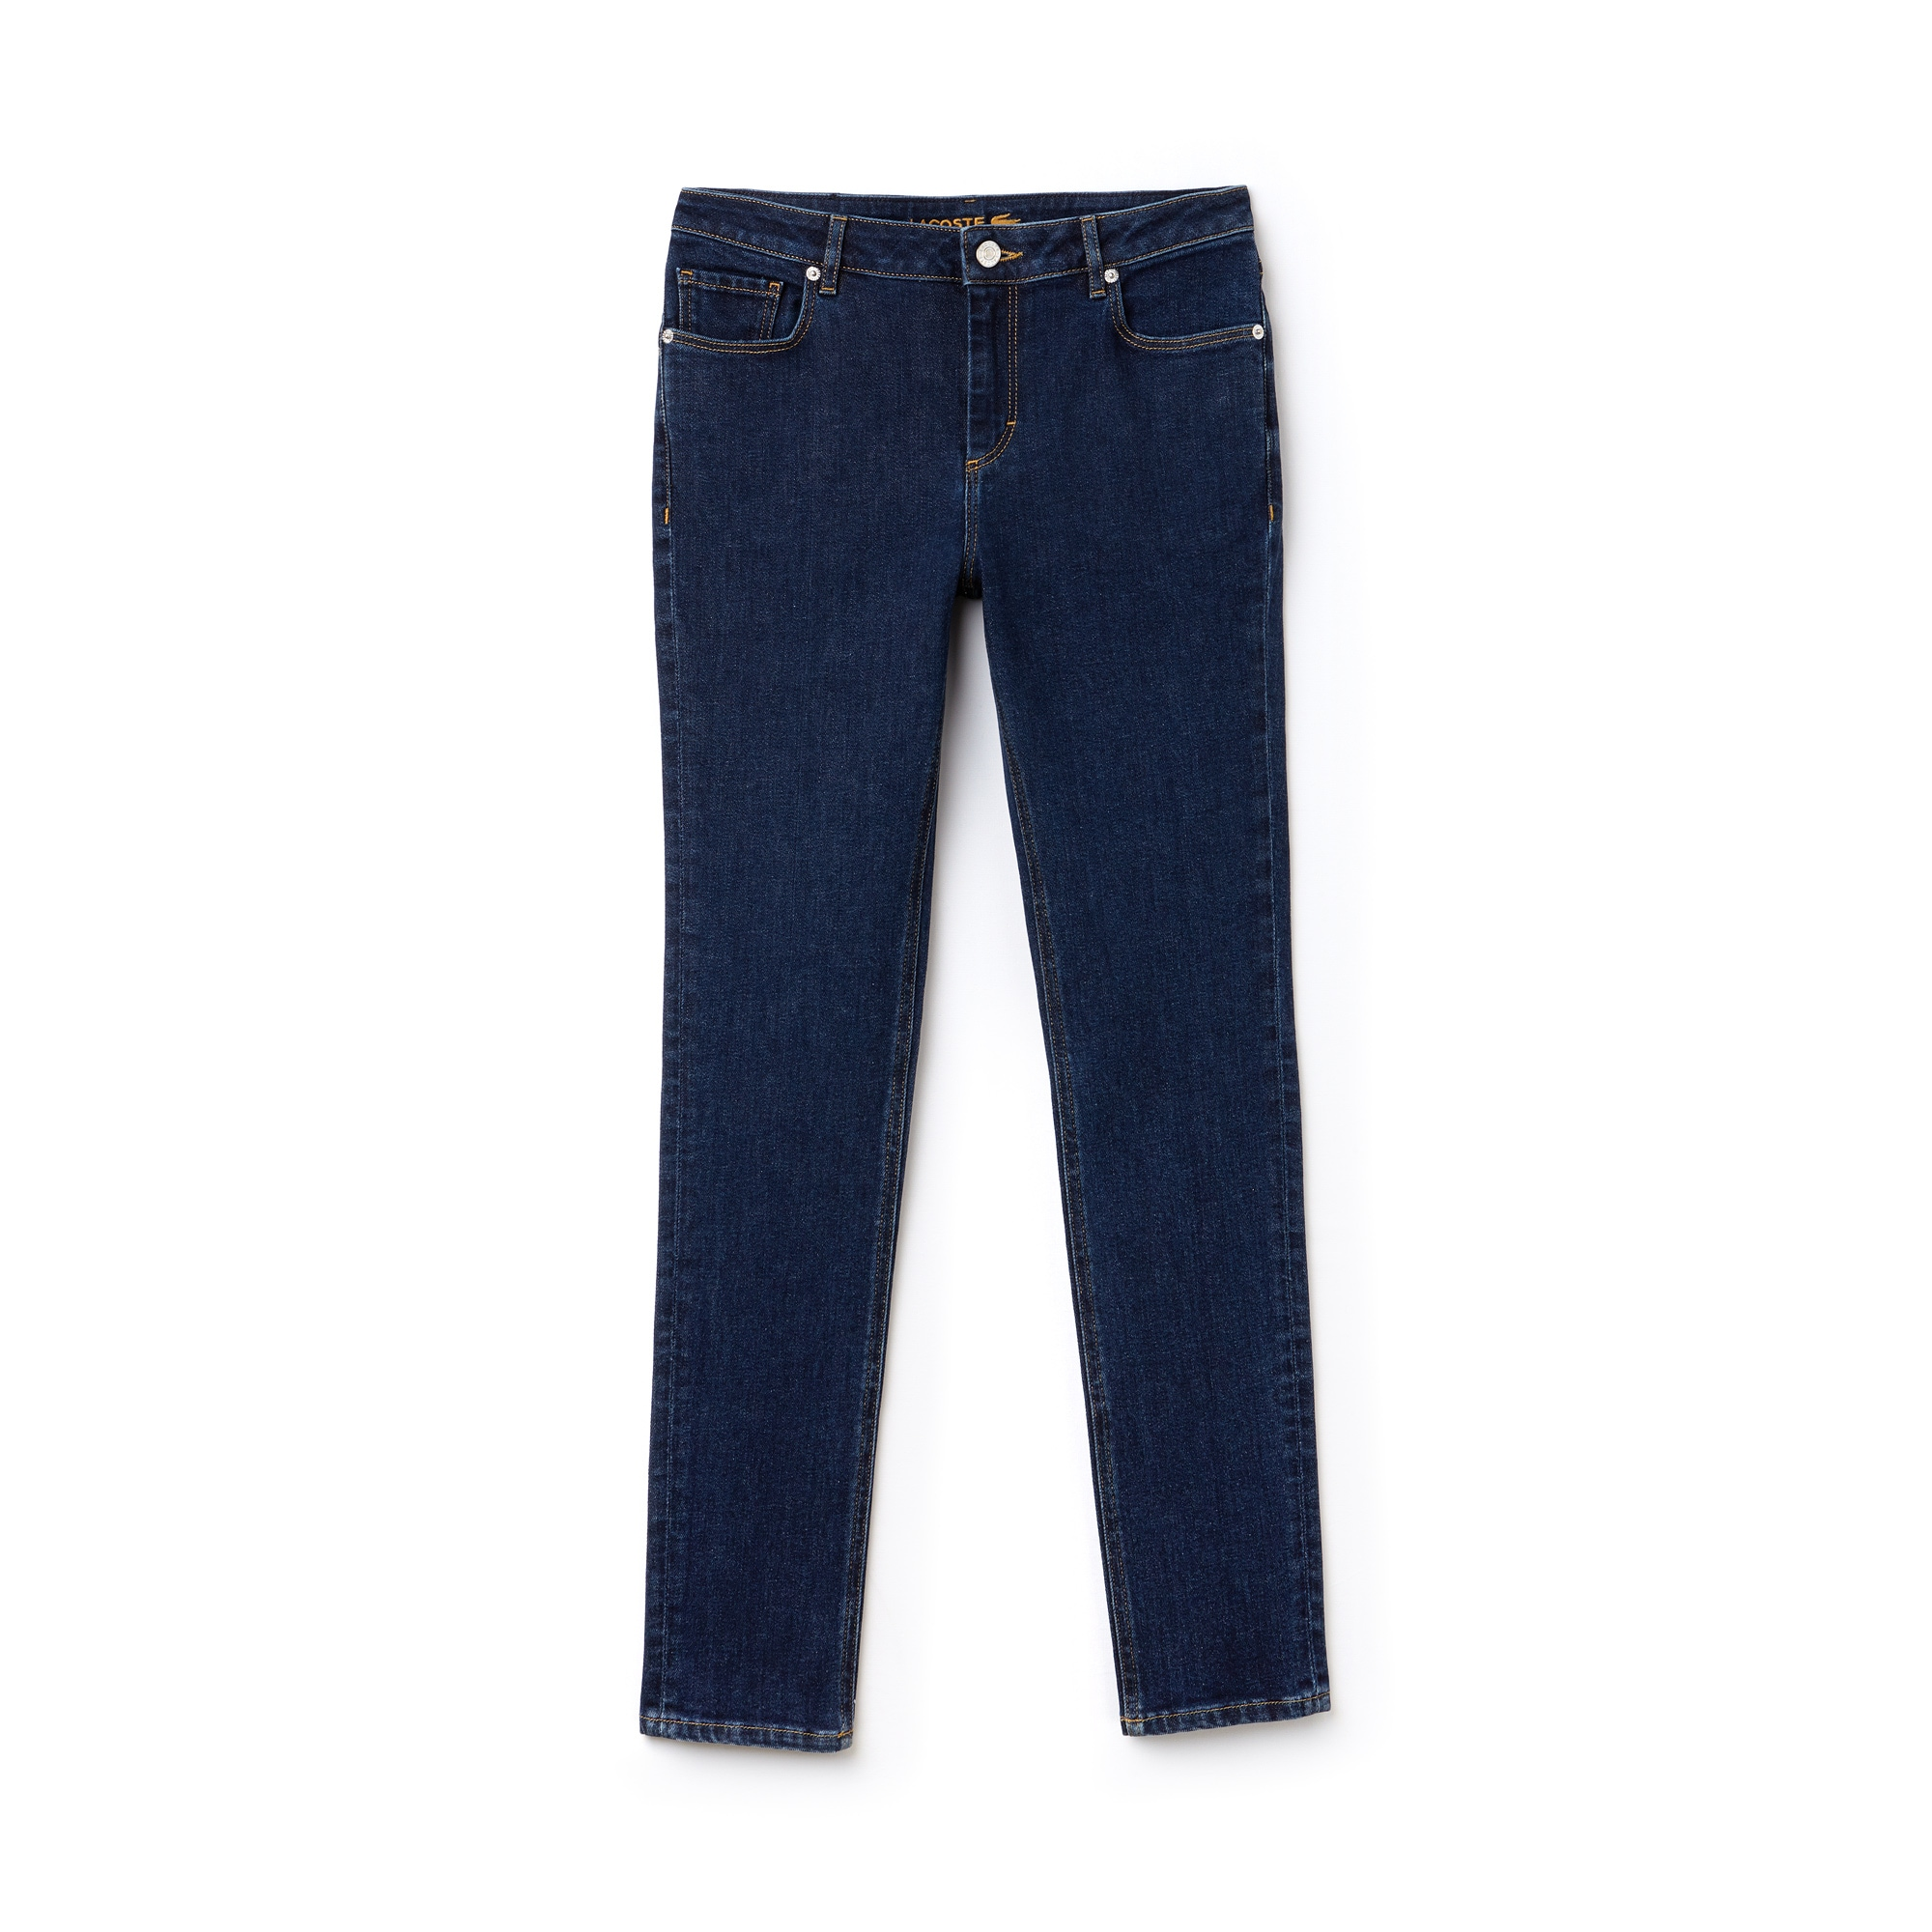 라코스테 Lacoste Womens Slim Fit Stretch Cotton Denim Jeans,blue chine